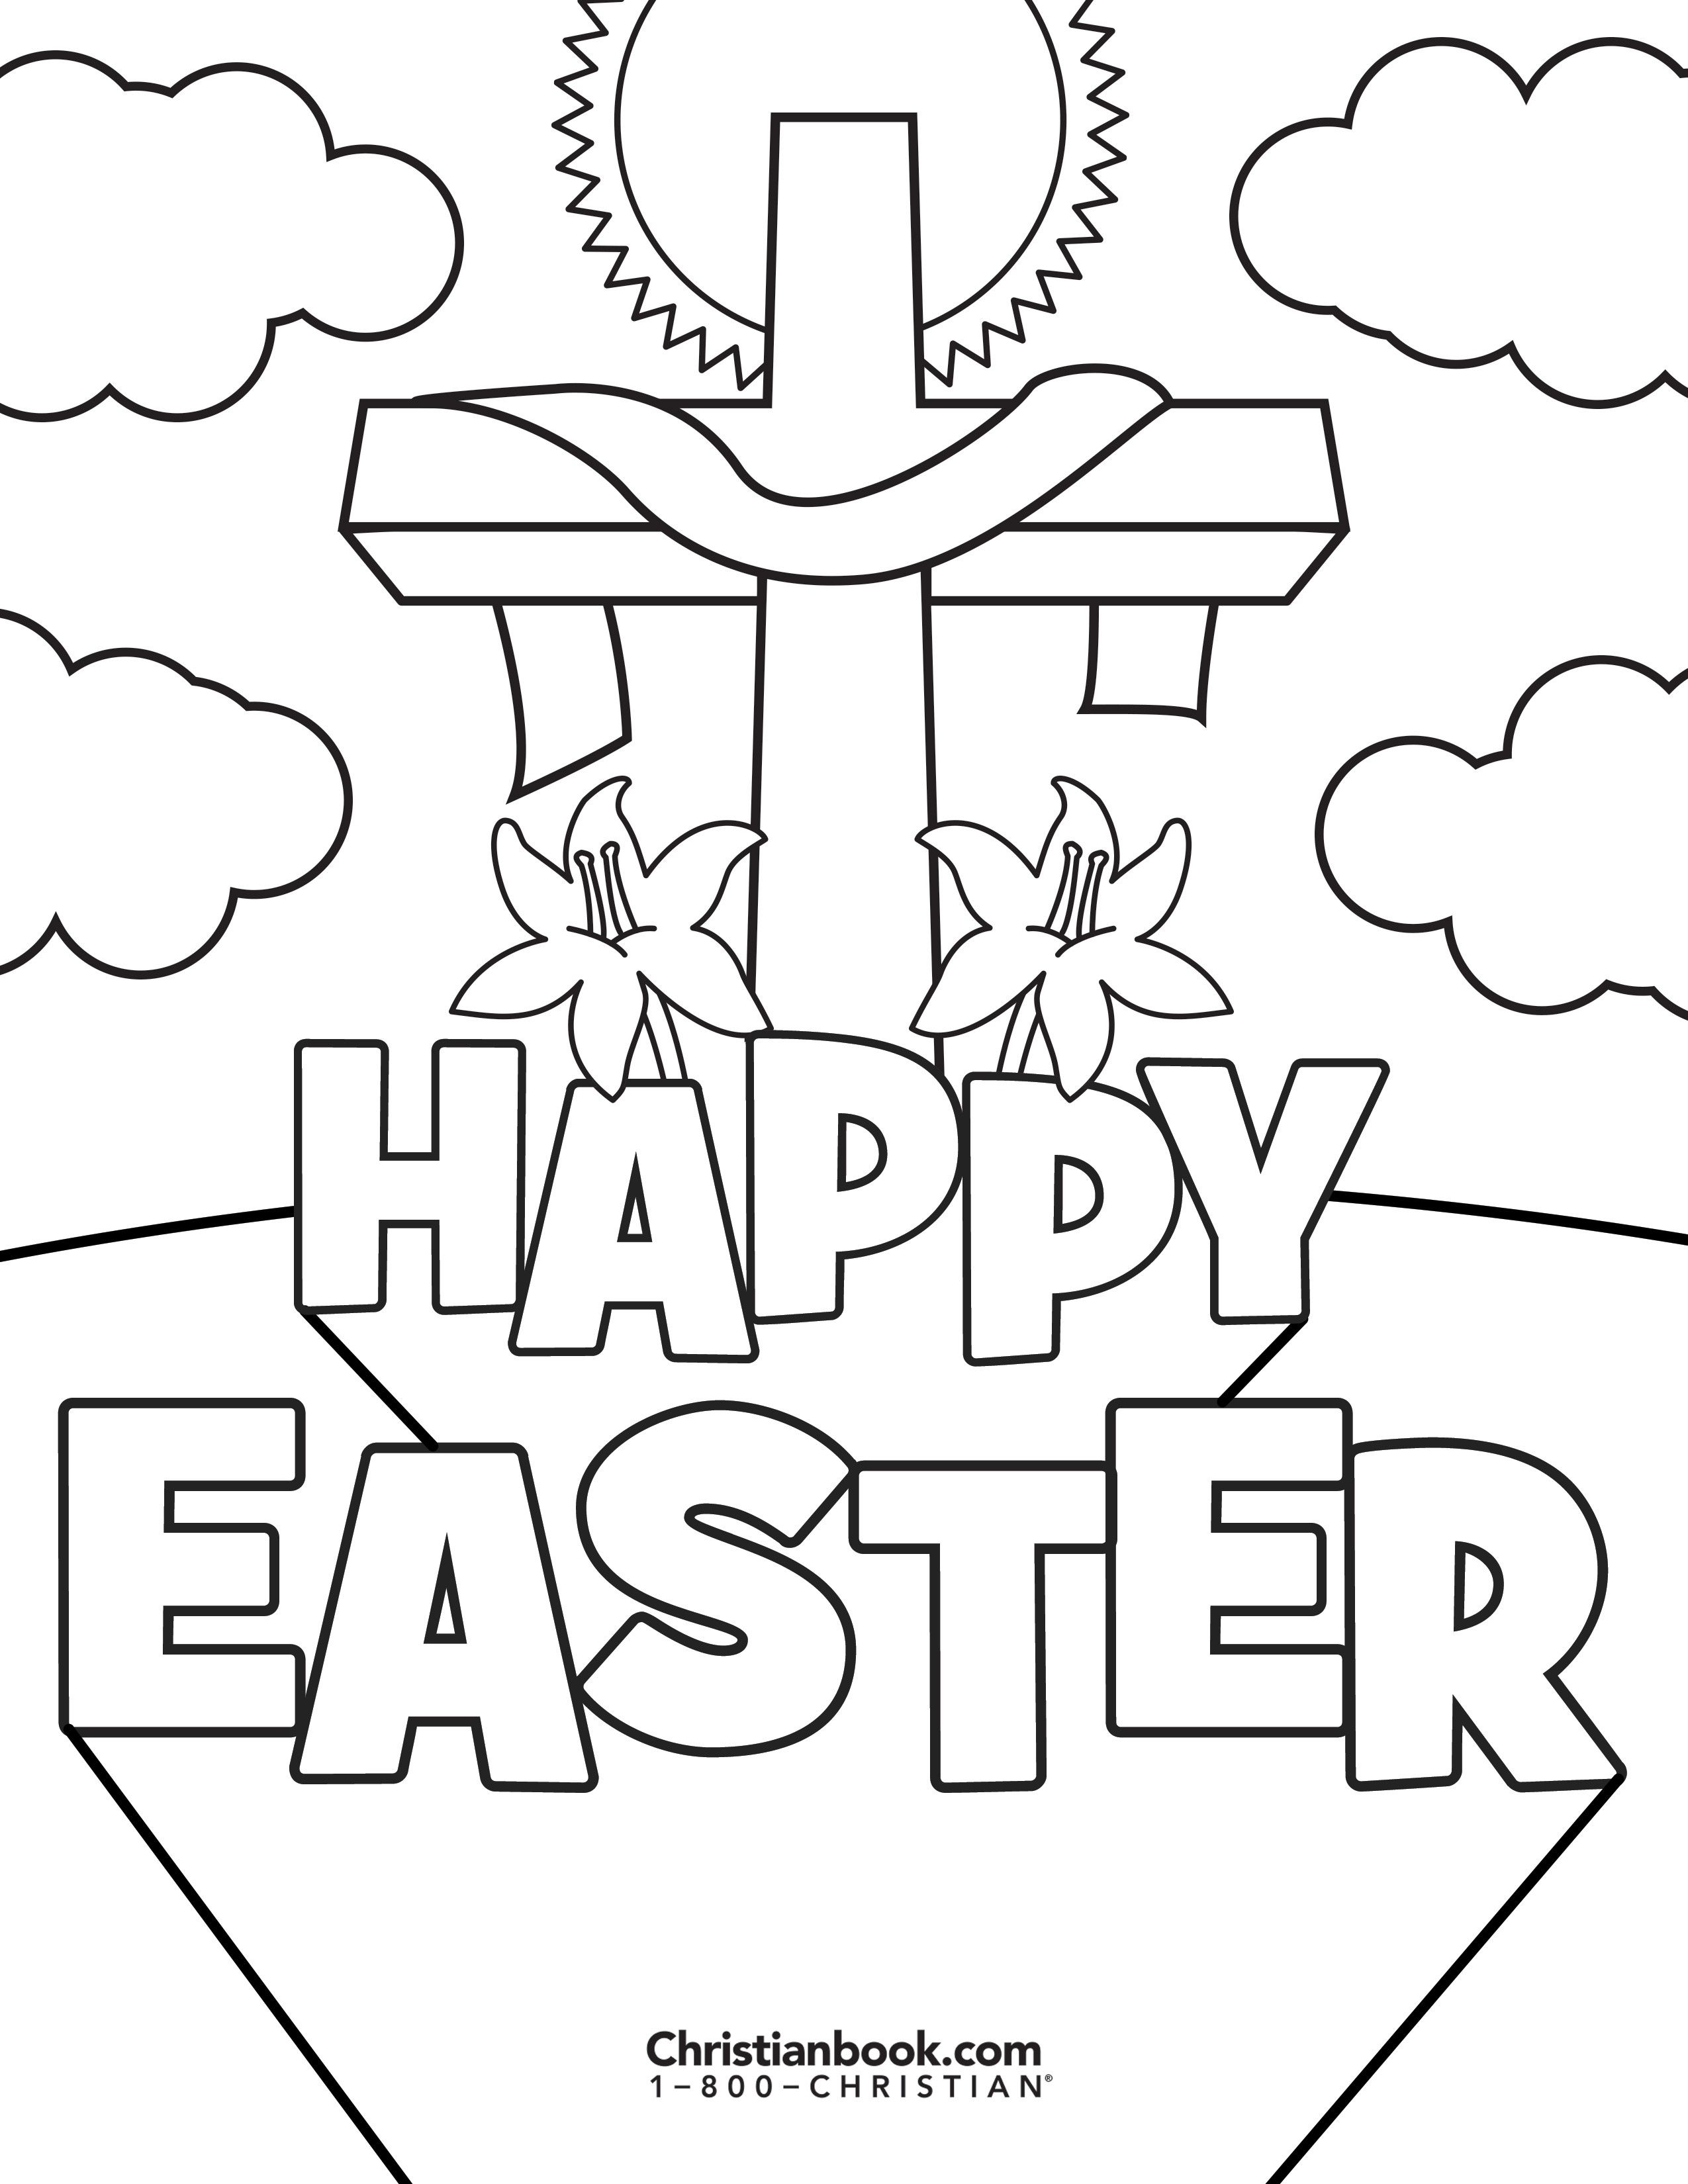 Free Printable Easter Coloring Page Easter Printables Free Coloring Pages Easter Cards